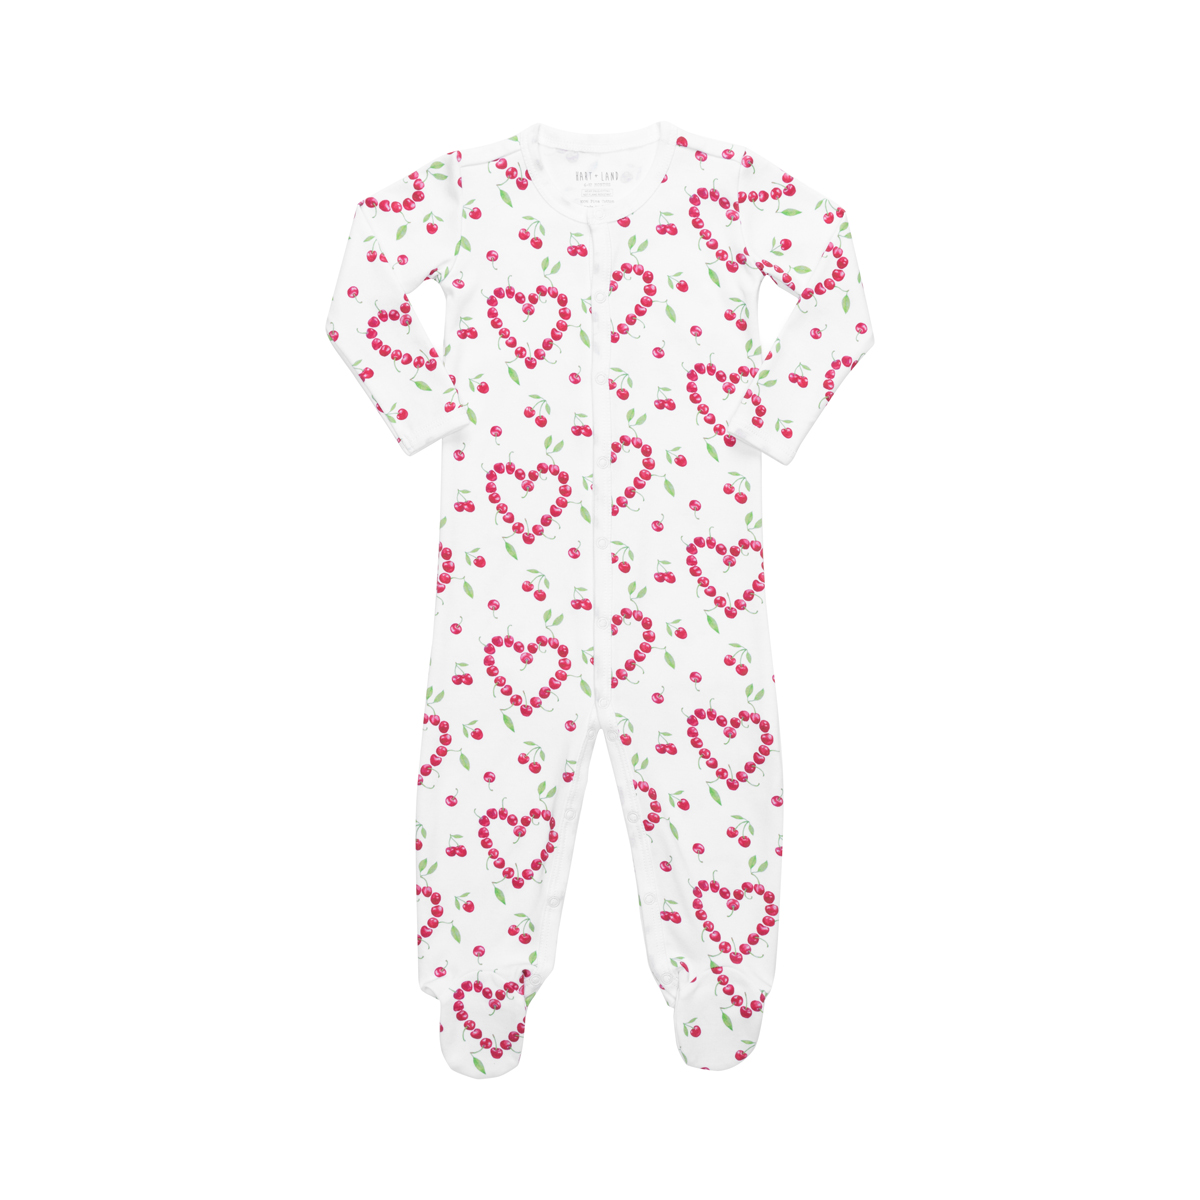 Hart + Land Pima Cotton Footed Bodysuit - Cherry Hearts